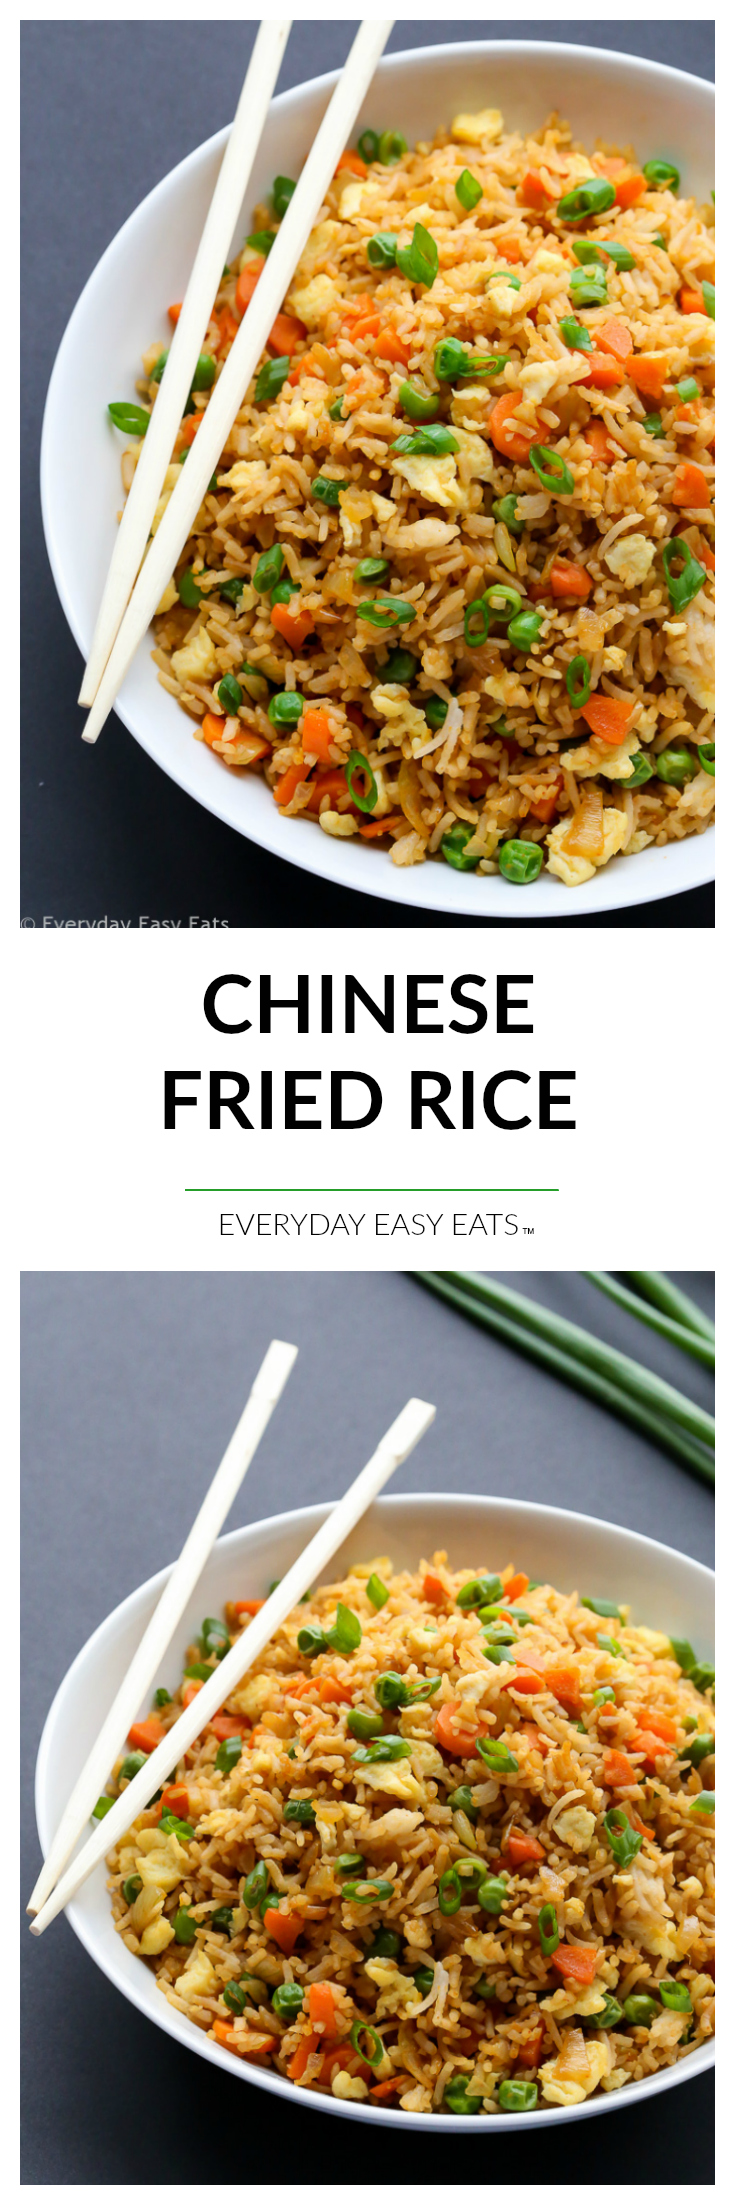 Easy, 15-Minute Chinese Fried Rice Recipe | EverydayEasyEats.com